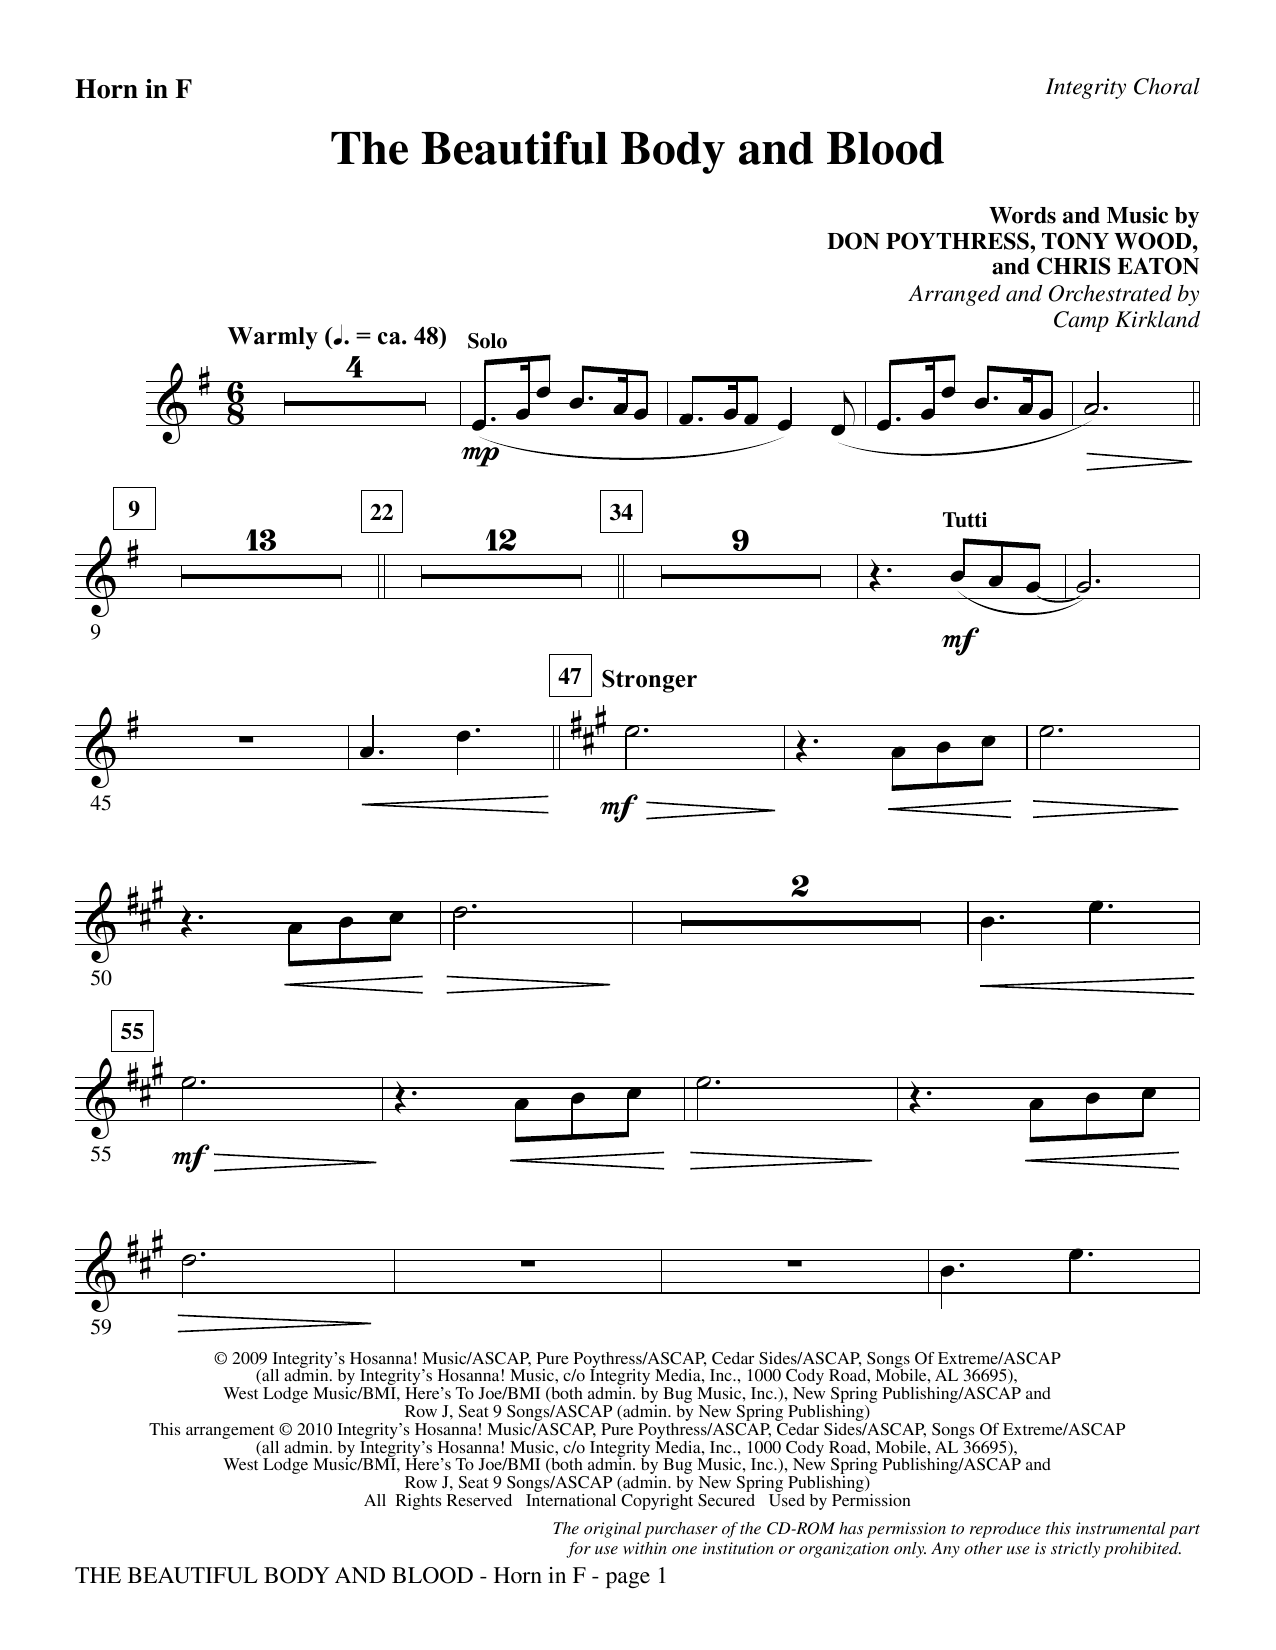 The Beautiful Body And Blood - F Horn sheet music